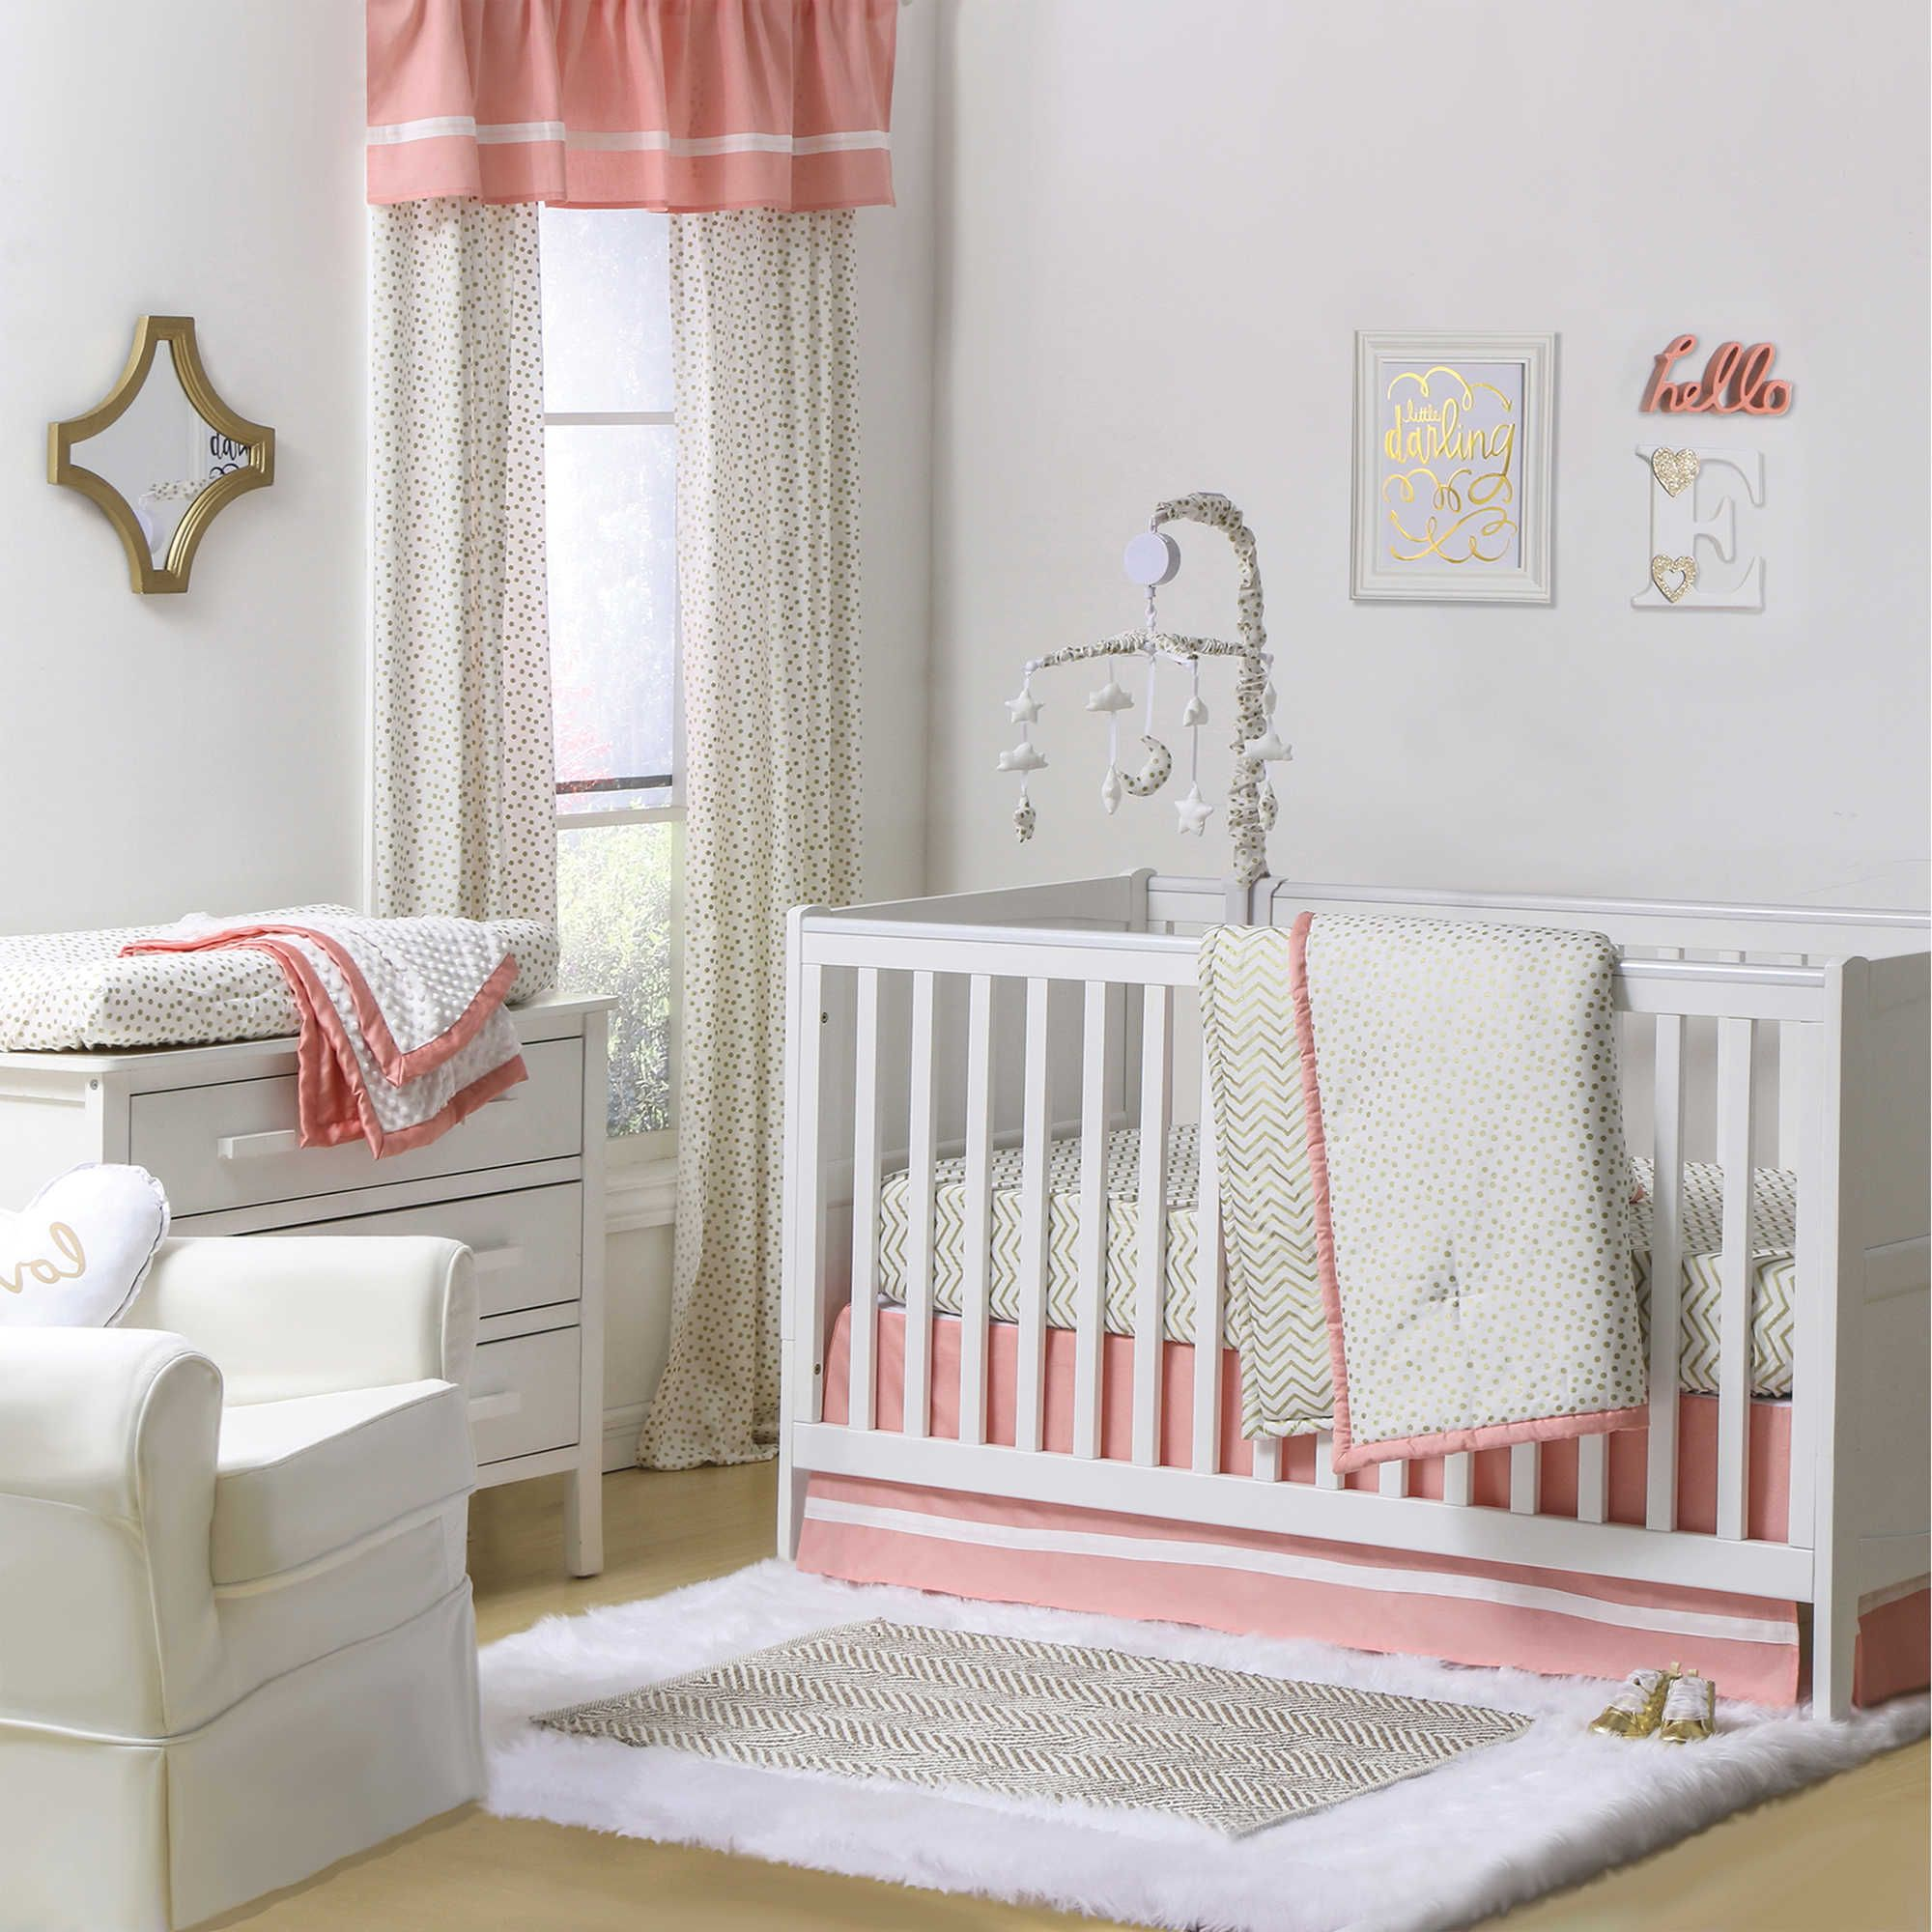 flva girl and nursery sheet fullxfull coral il fitted baby peony cribs crib navy bedding pink floral p